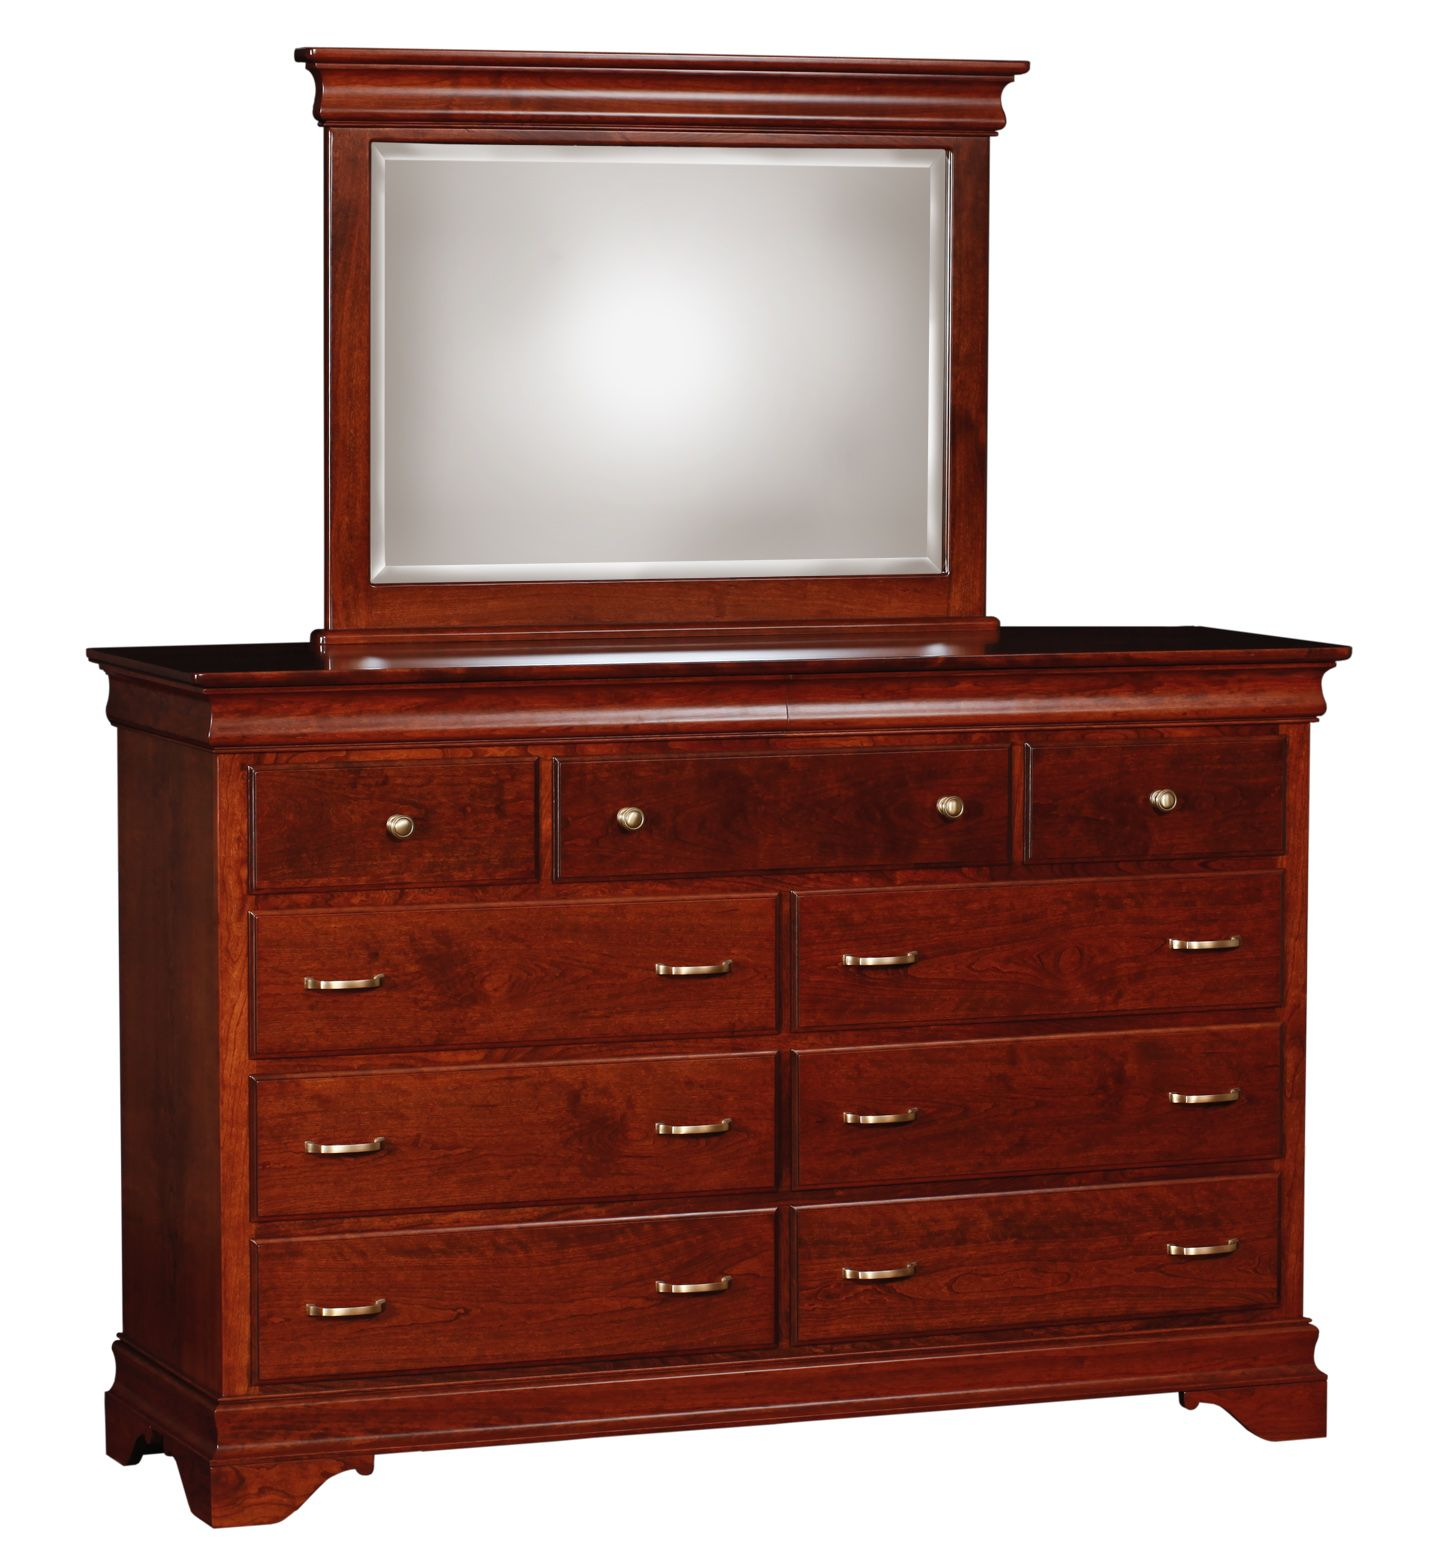 Design Model Dressers With Mirror And 9 Drawer